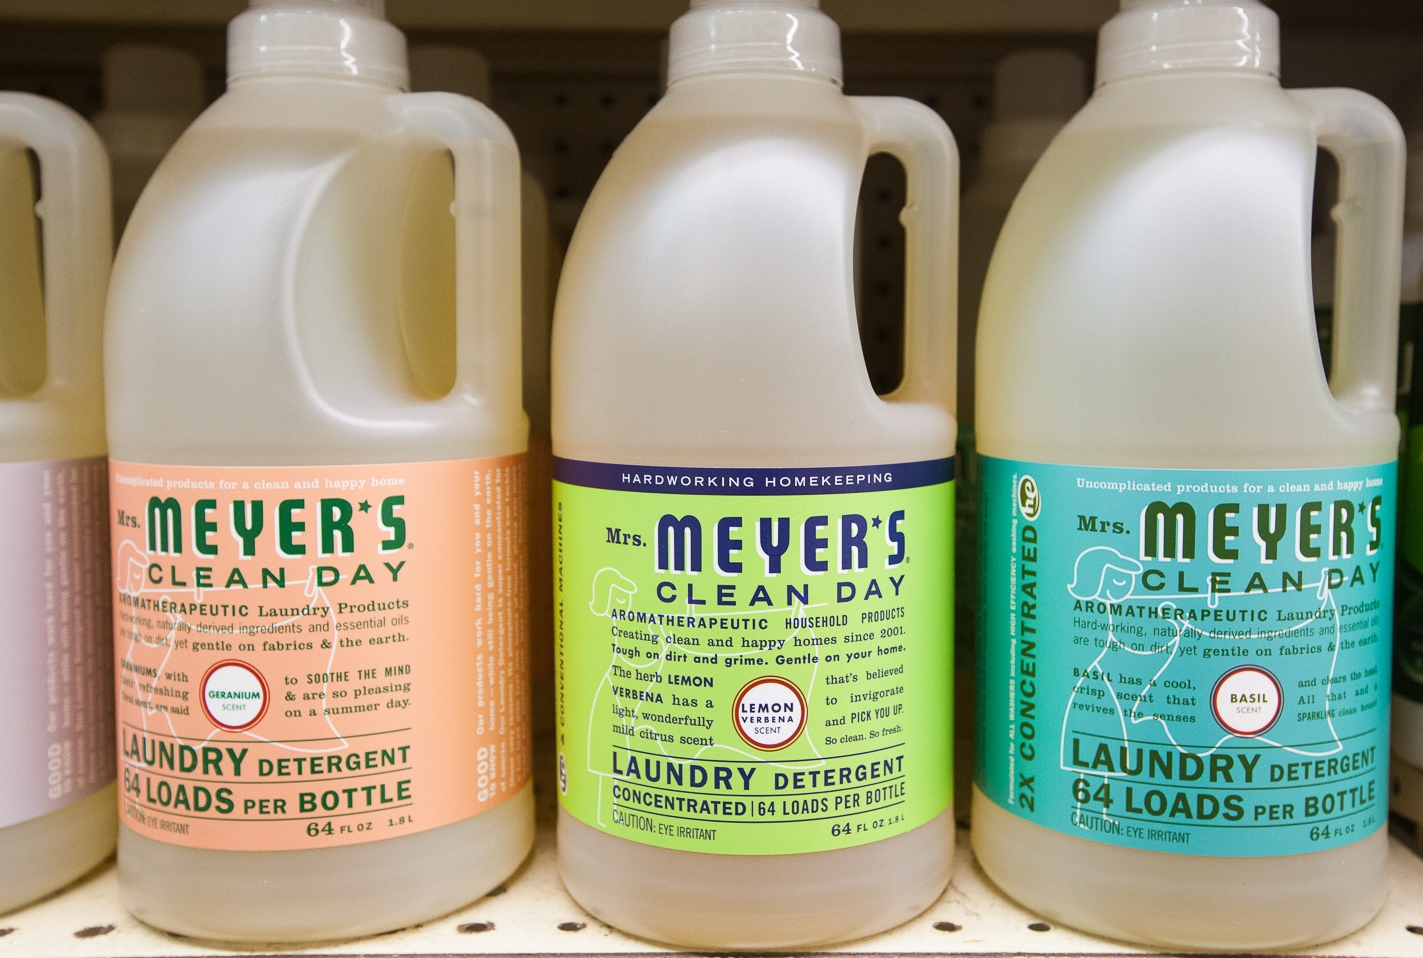 meyers-eco-friendly-products-mana-foods-household-department.jpg